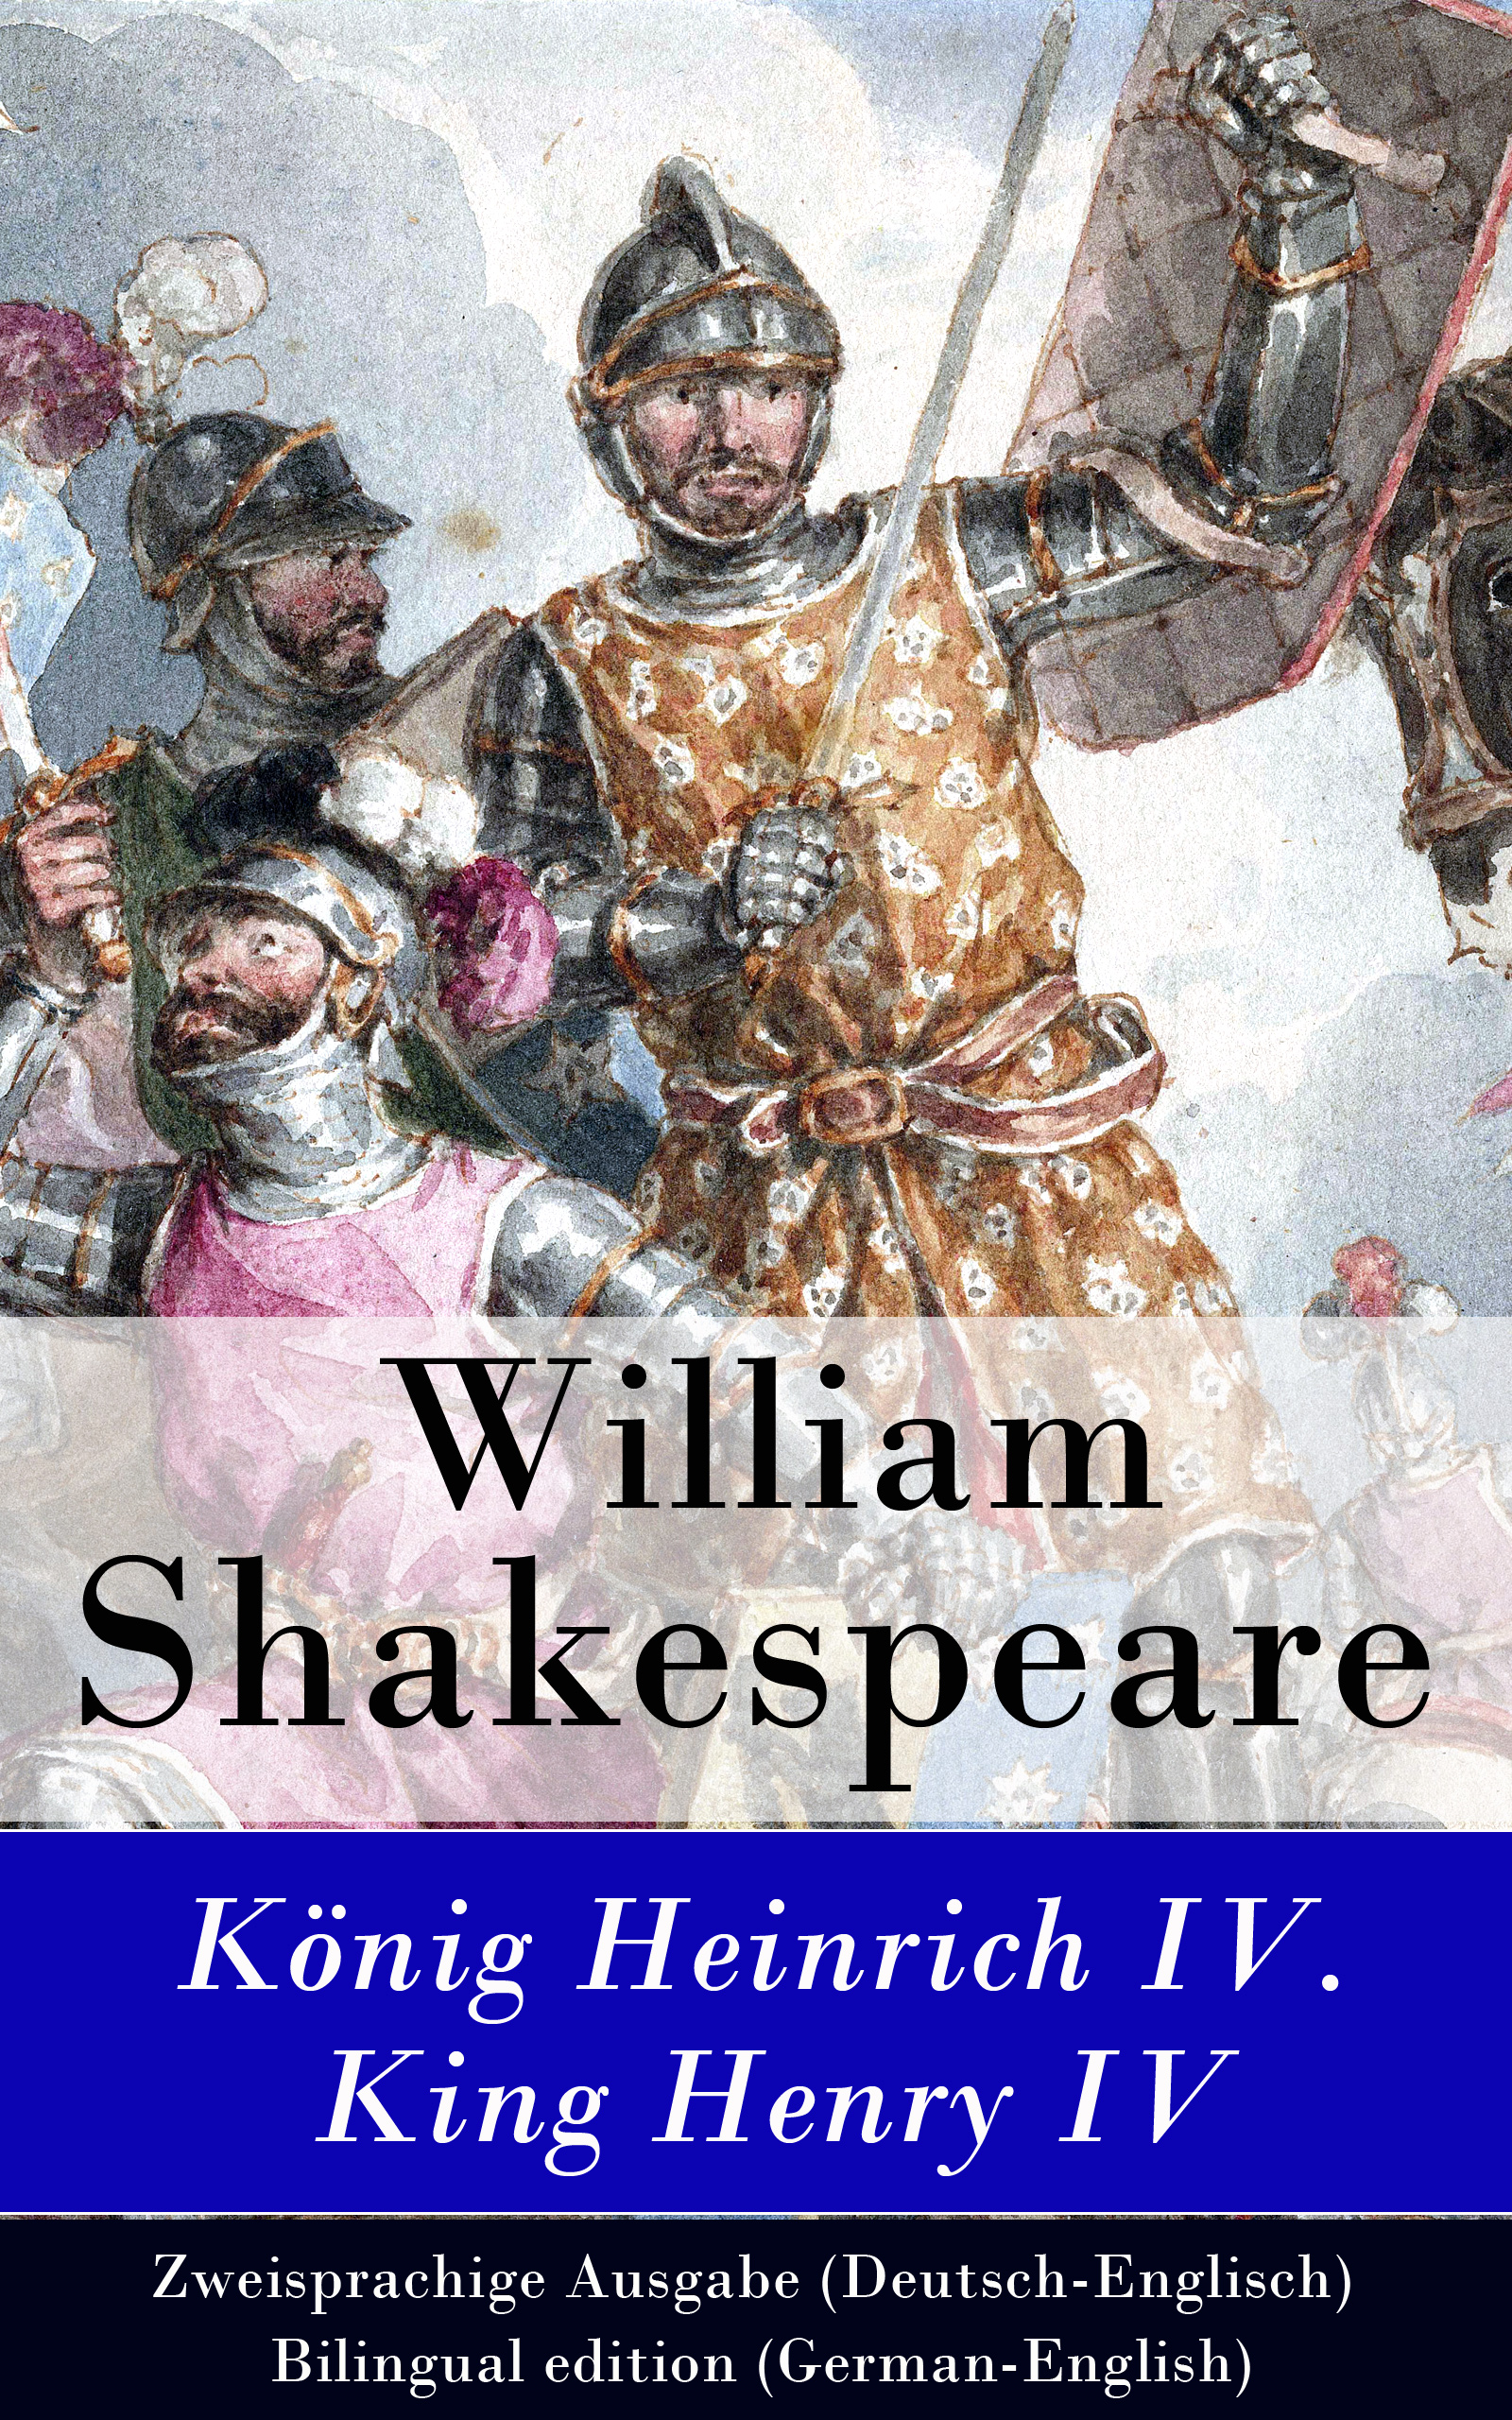 konig heinrich iv king henry iv zweisprachige ausgabe deutsch englisch bilingual edition german english